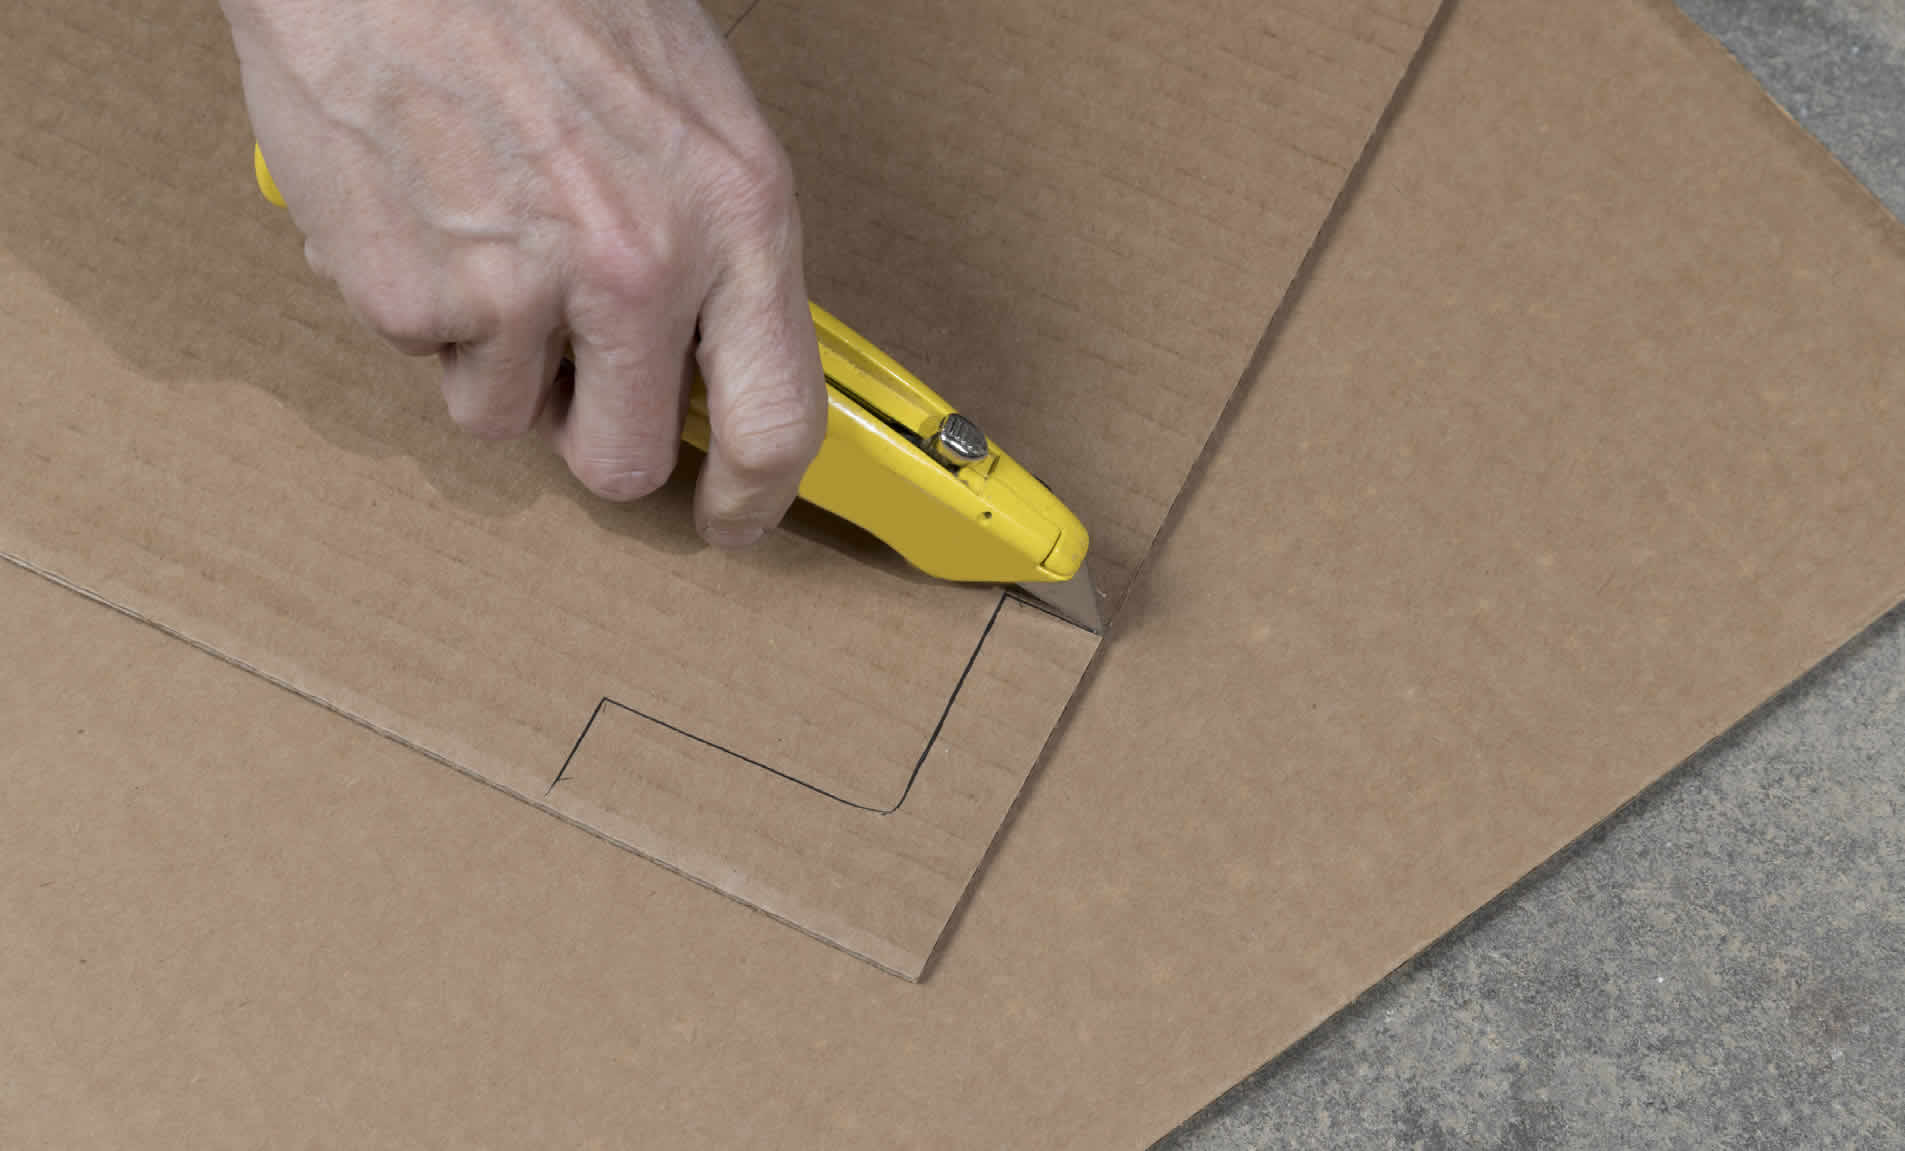 cutting cardboard with a box cutter